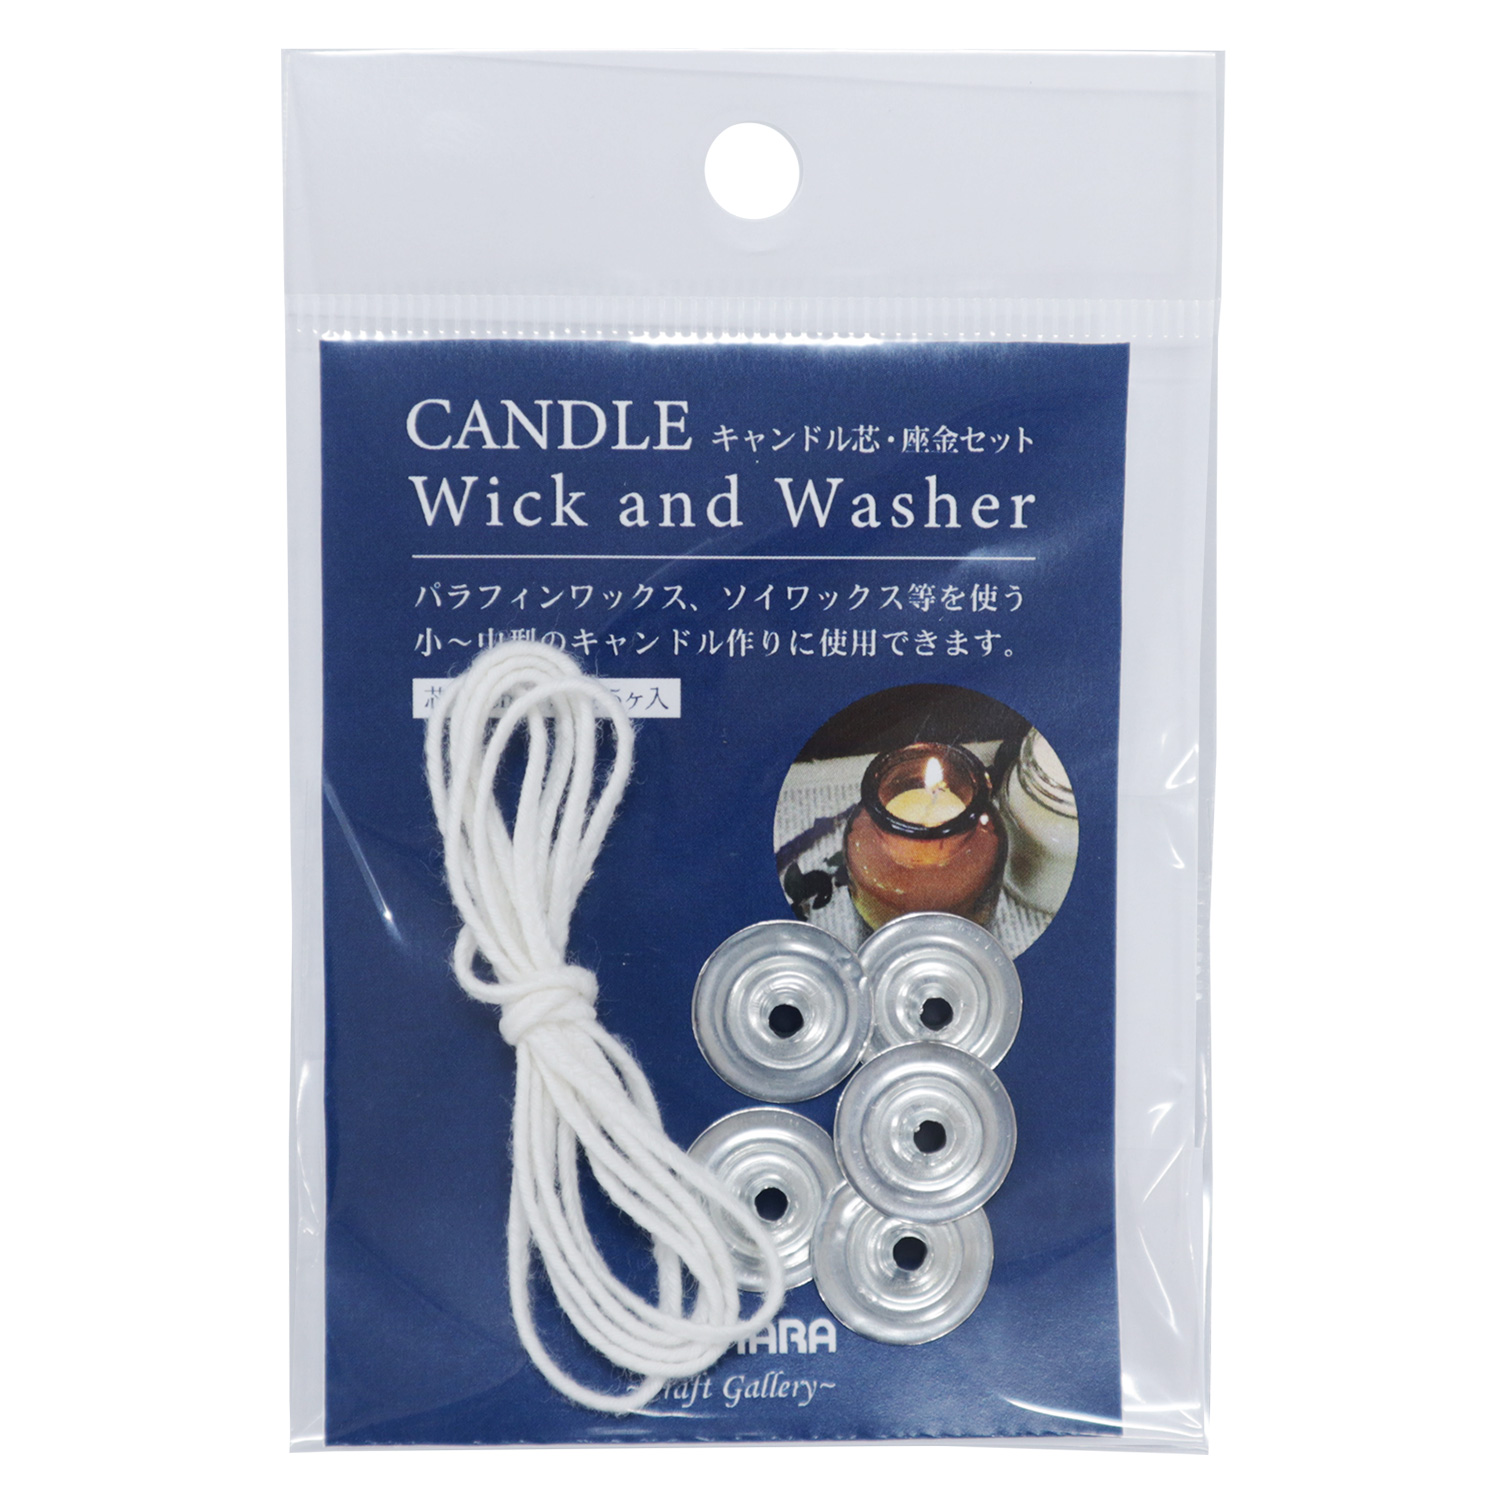 1-candle_wick_washer.jpg